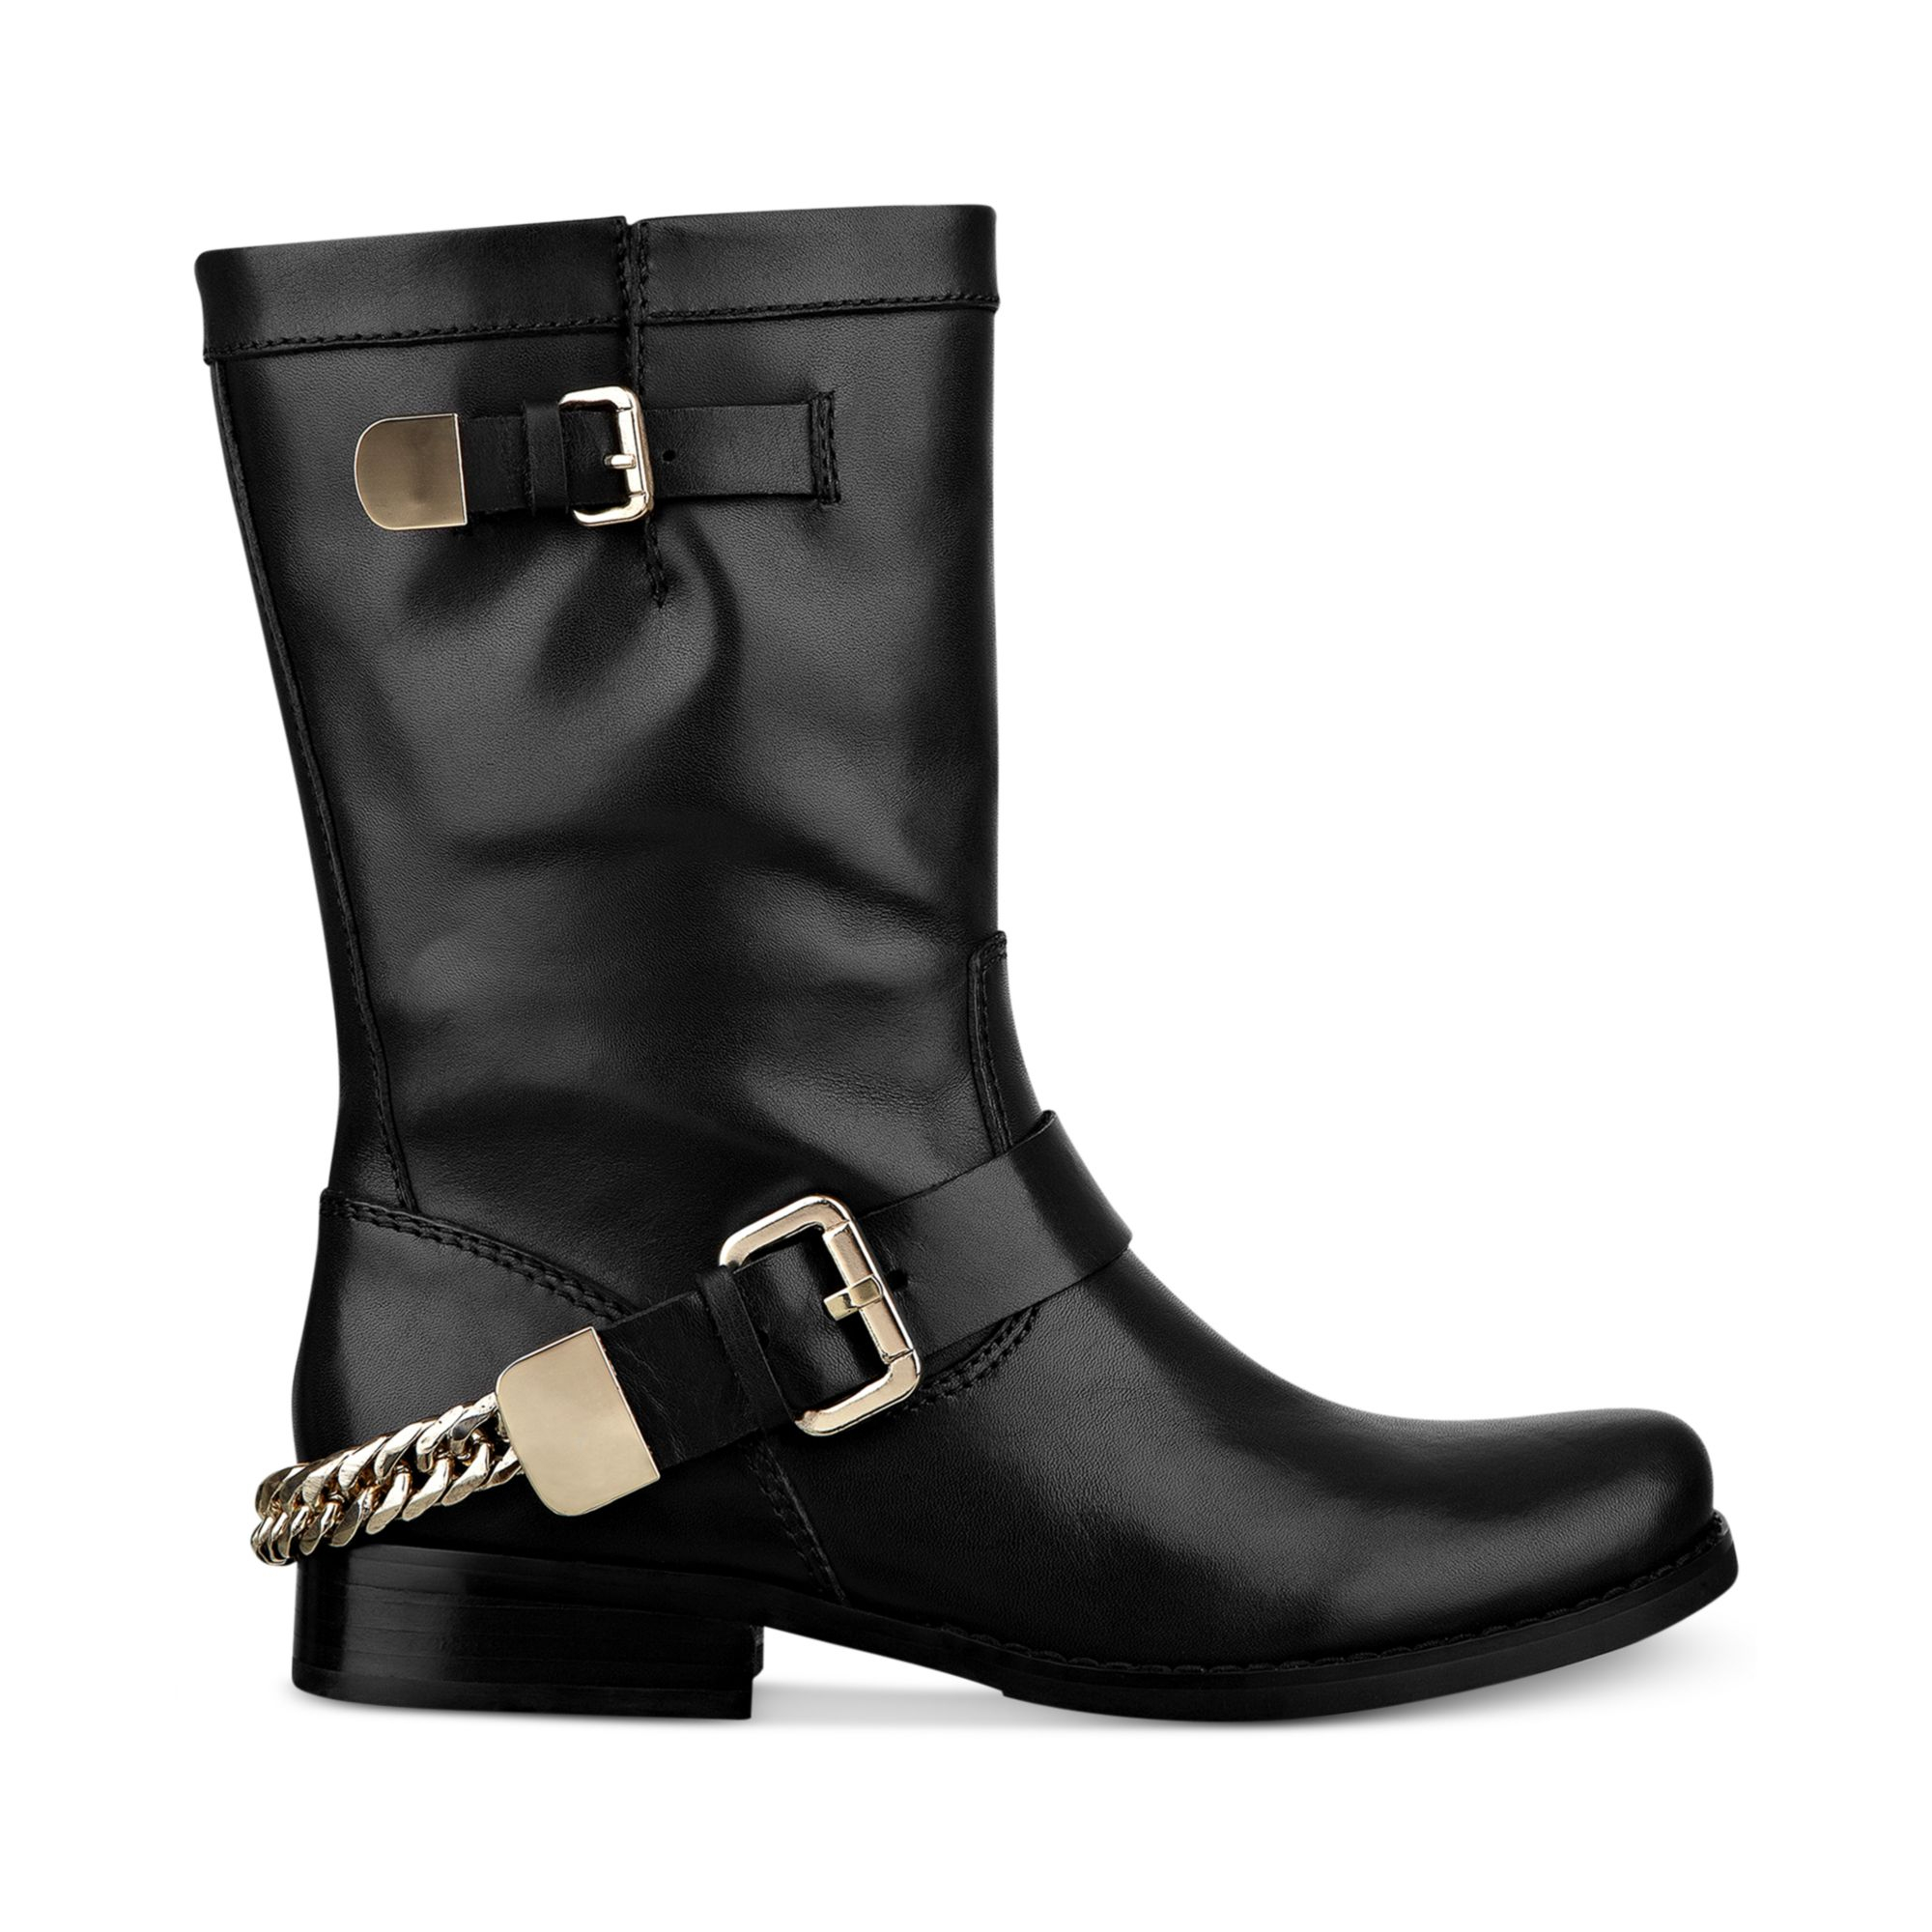 F5929 LADIES MID CALF SPOT ON BUCKLE DETAIL CASUAL BLOCK HEEL ANKLE BOOTS SALE